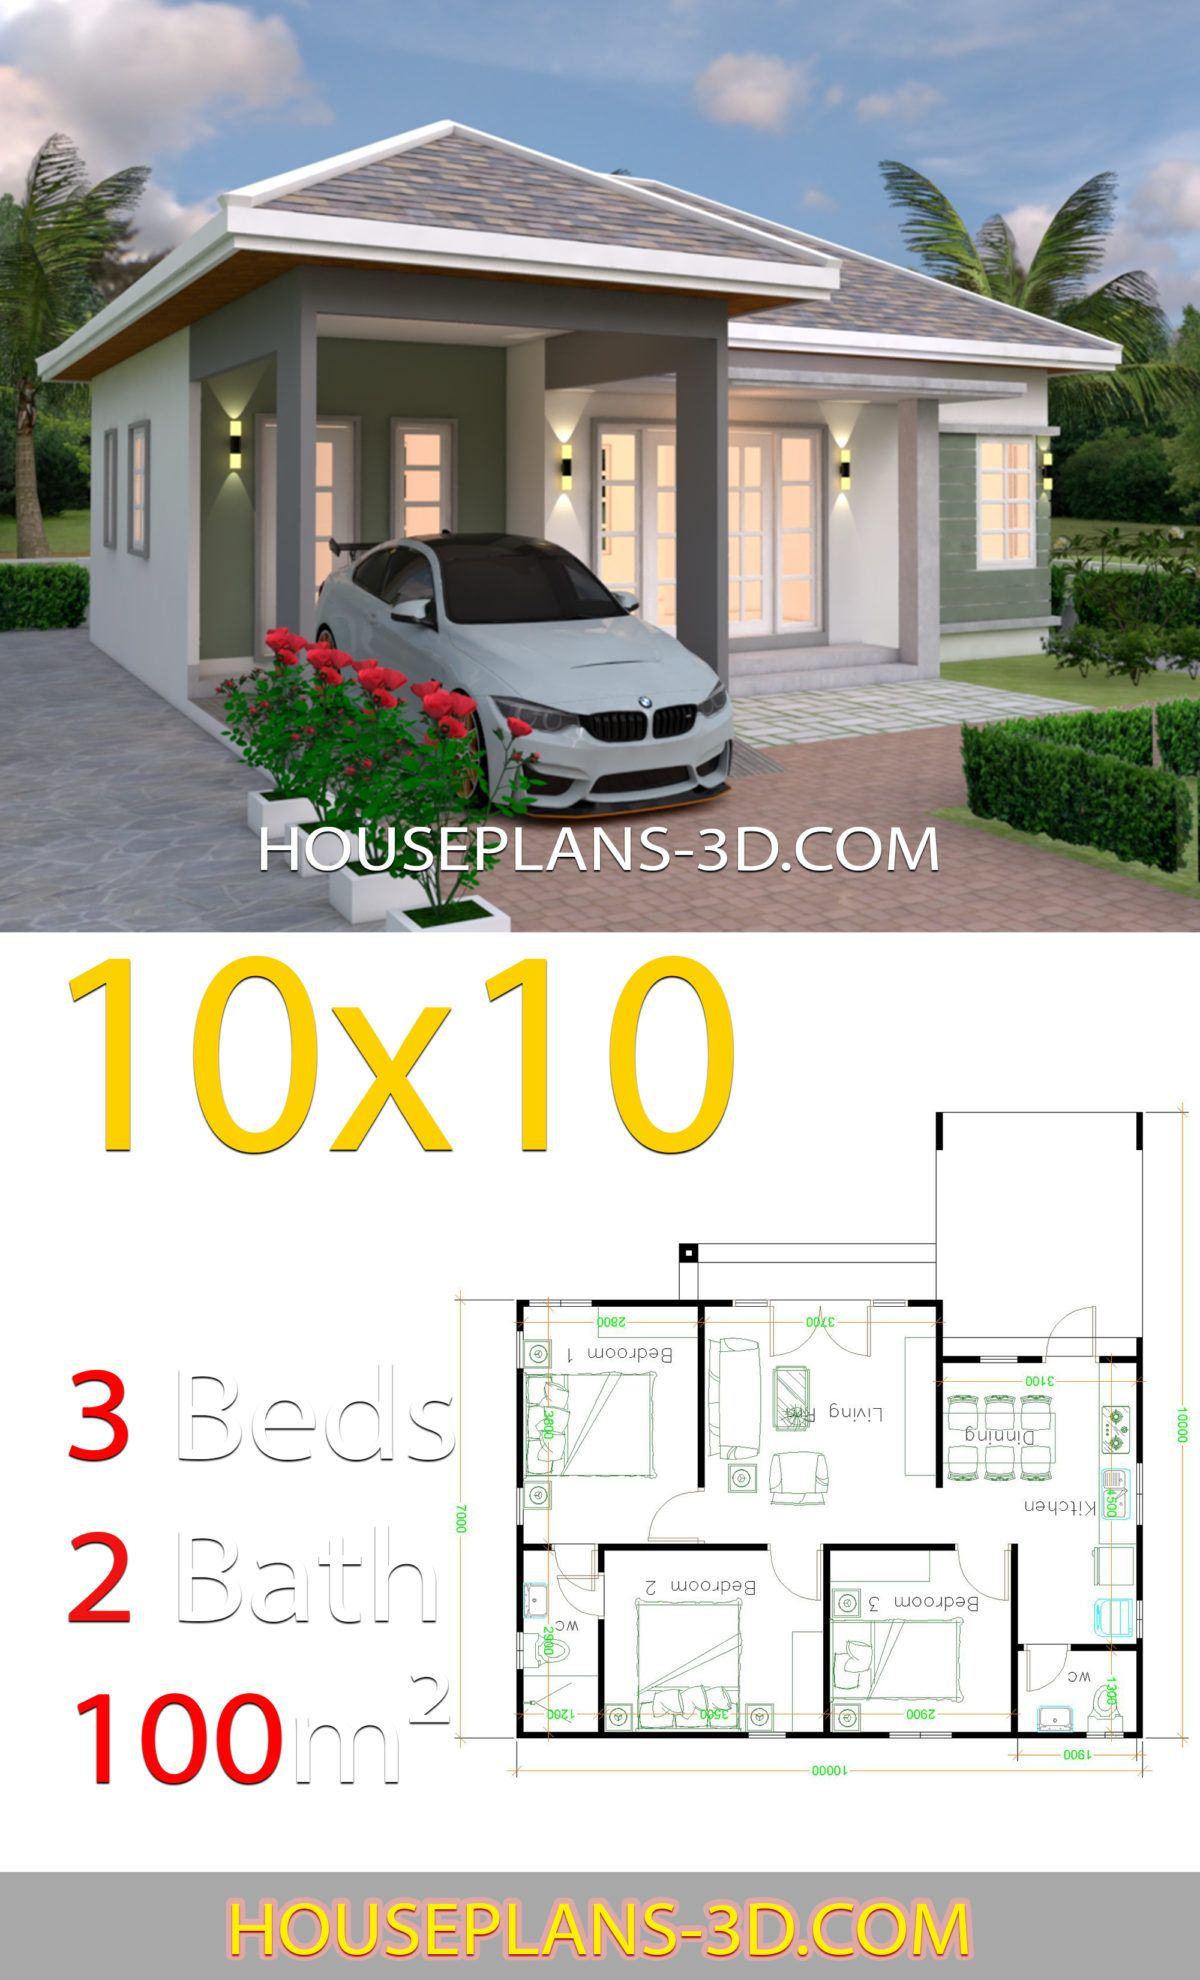 10x10 Bedroom Floor Plan: House Design 10x10 With 3 Bedrooms Hip Roof (With Images